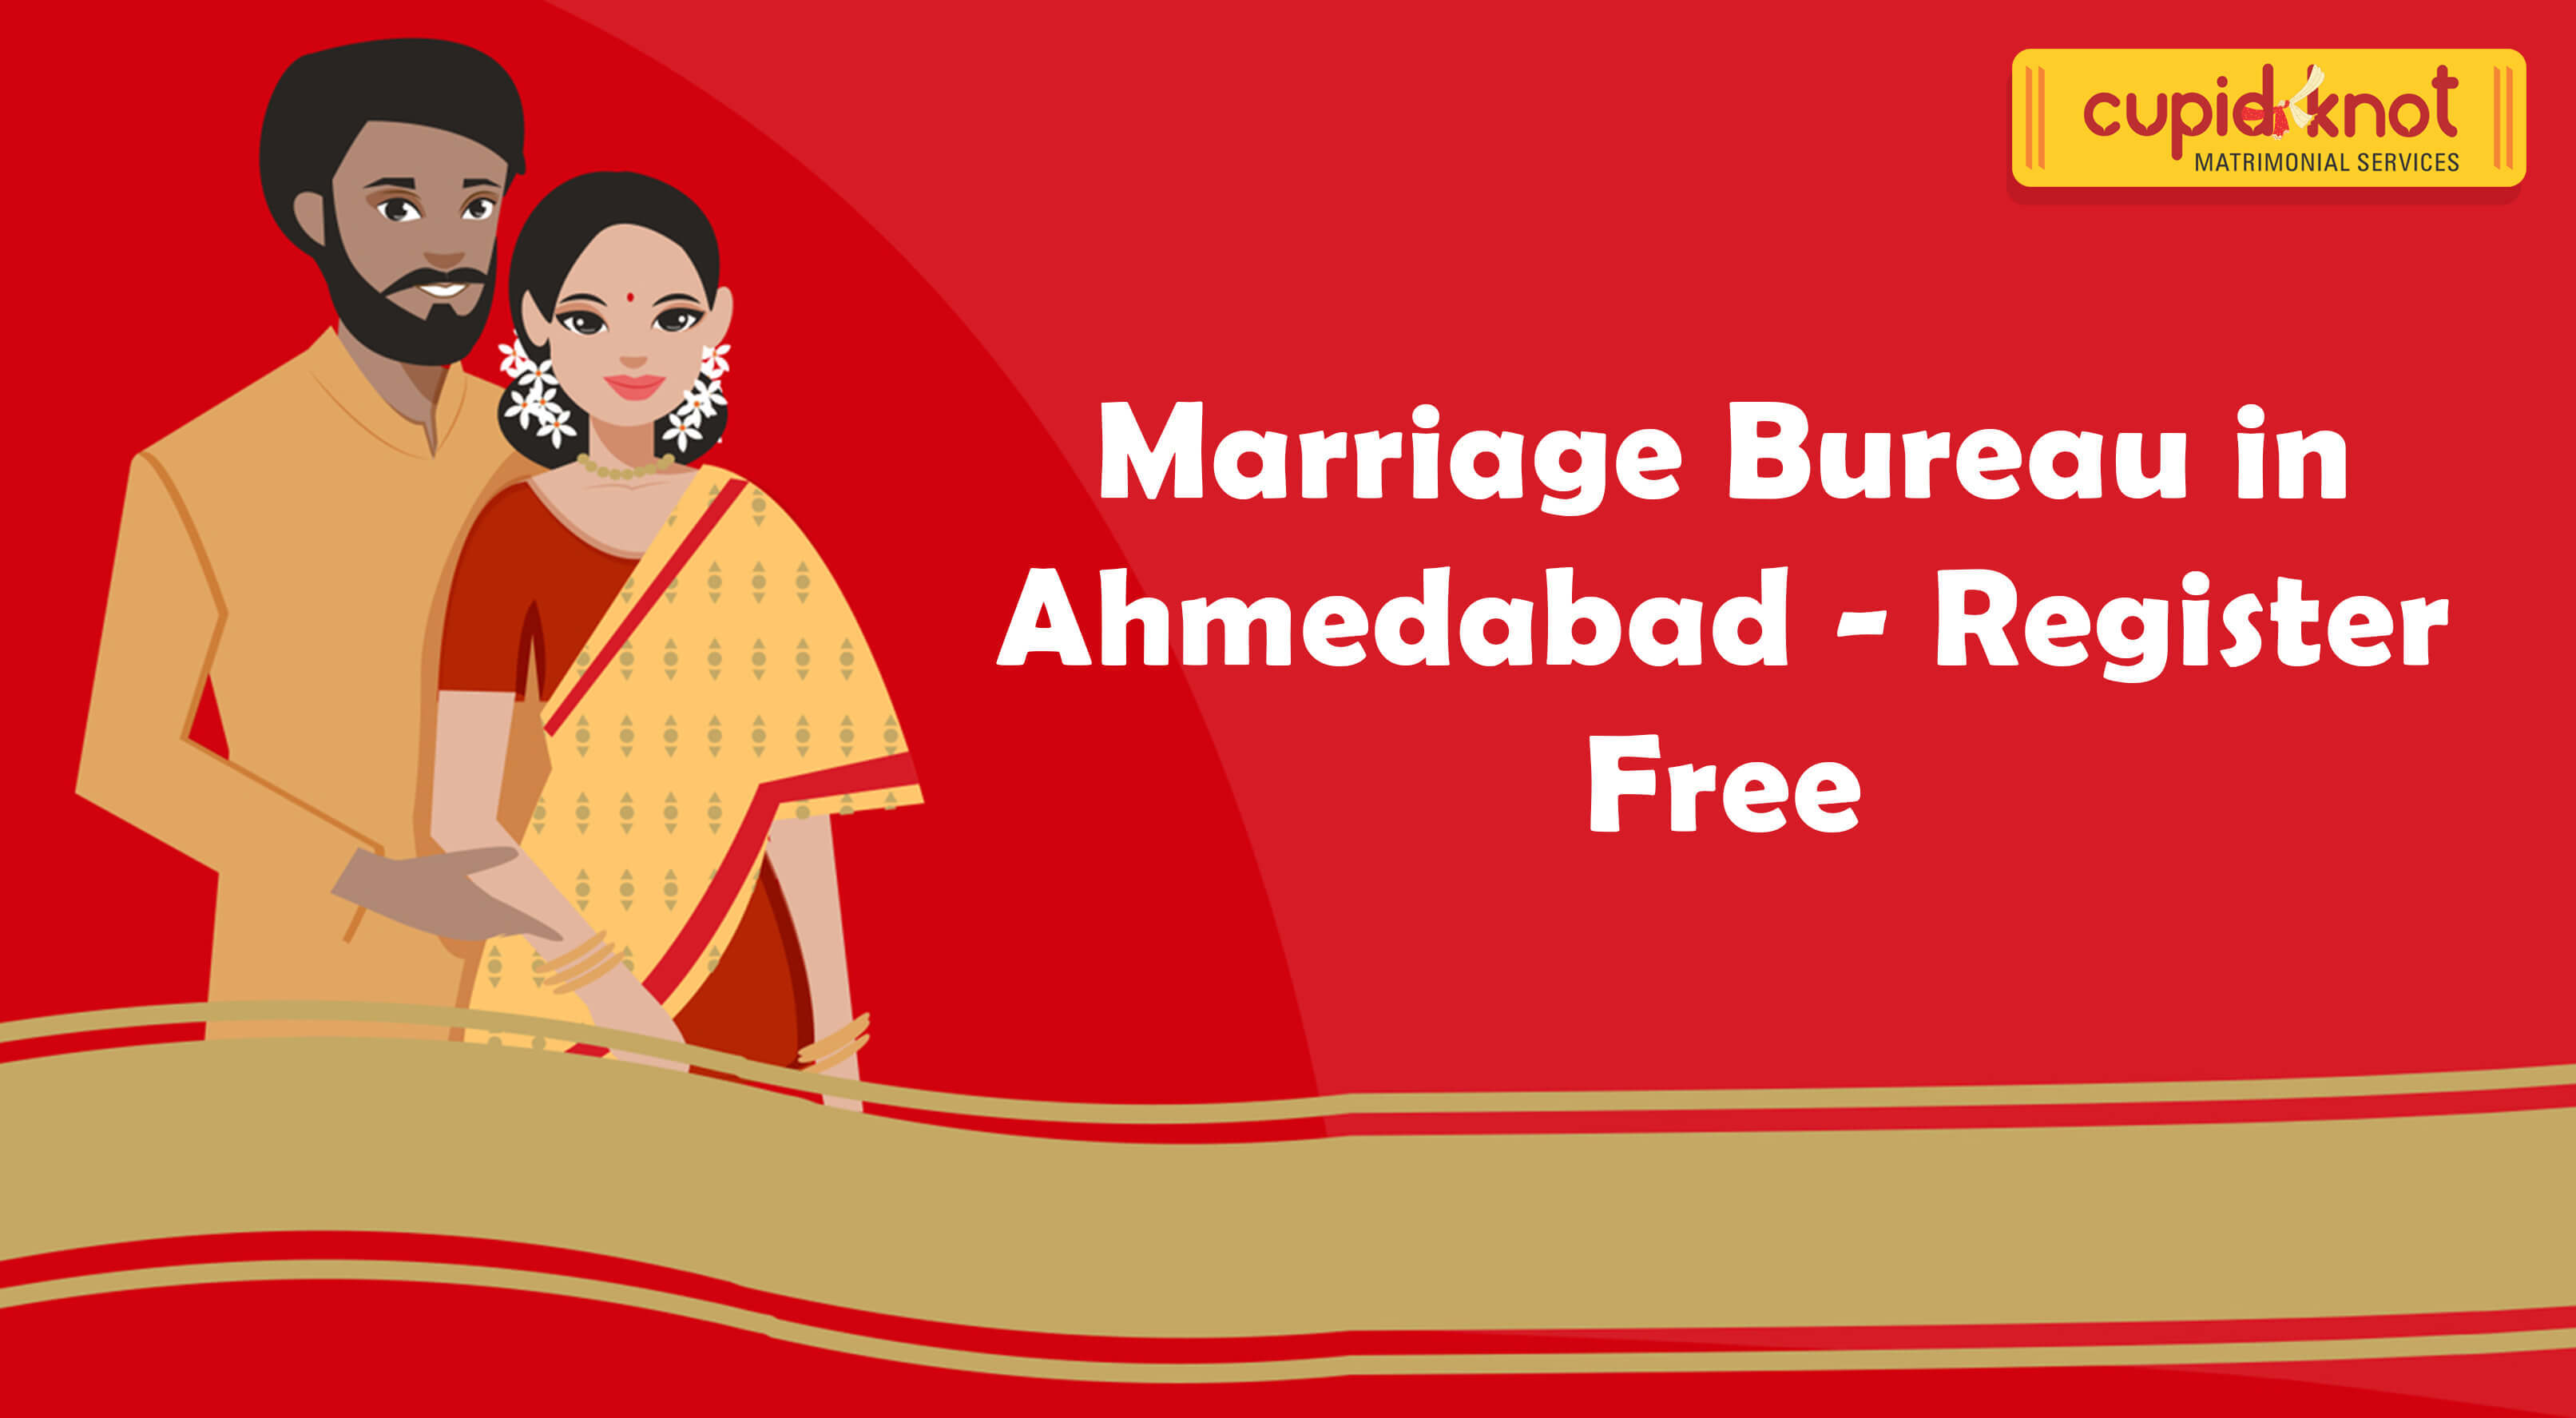 Marriage Bureau in Ahmedabad - Register Free